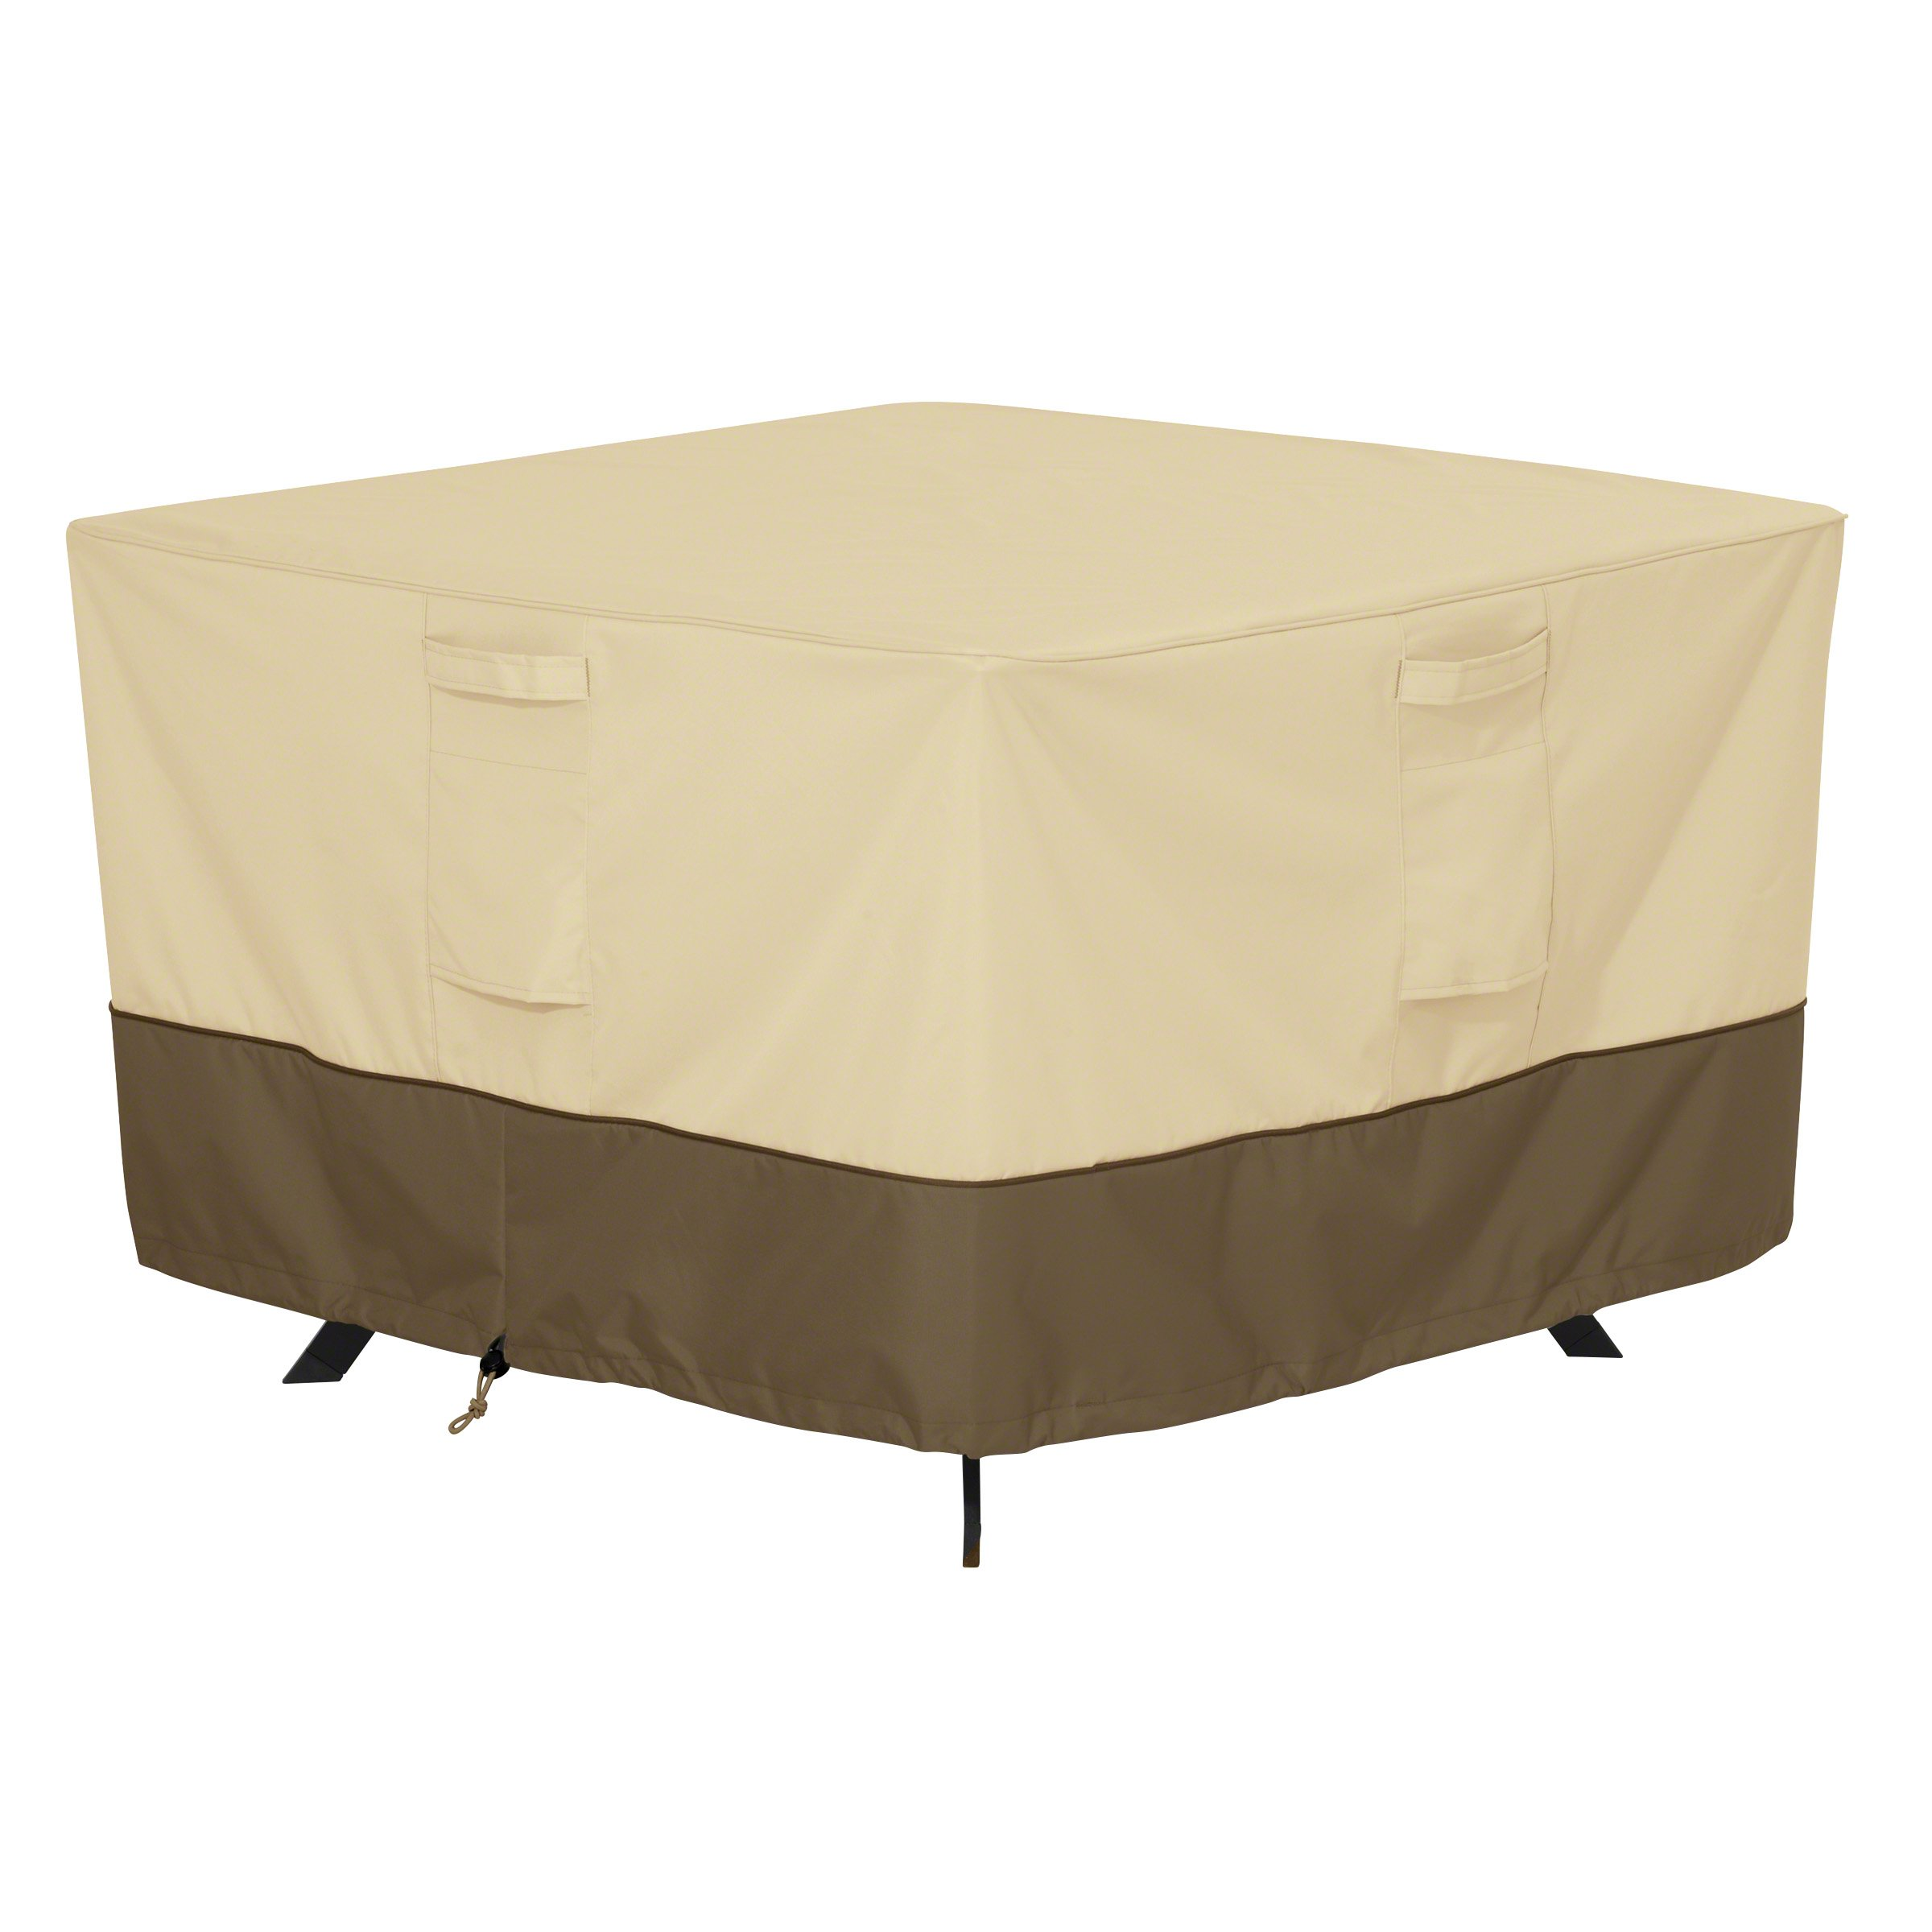 Classic Accessories Veranda Square Patio Table Cover - Durable and Water Resistant Patio Furniture Cover, Large (55-567-011501-00)